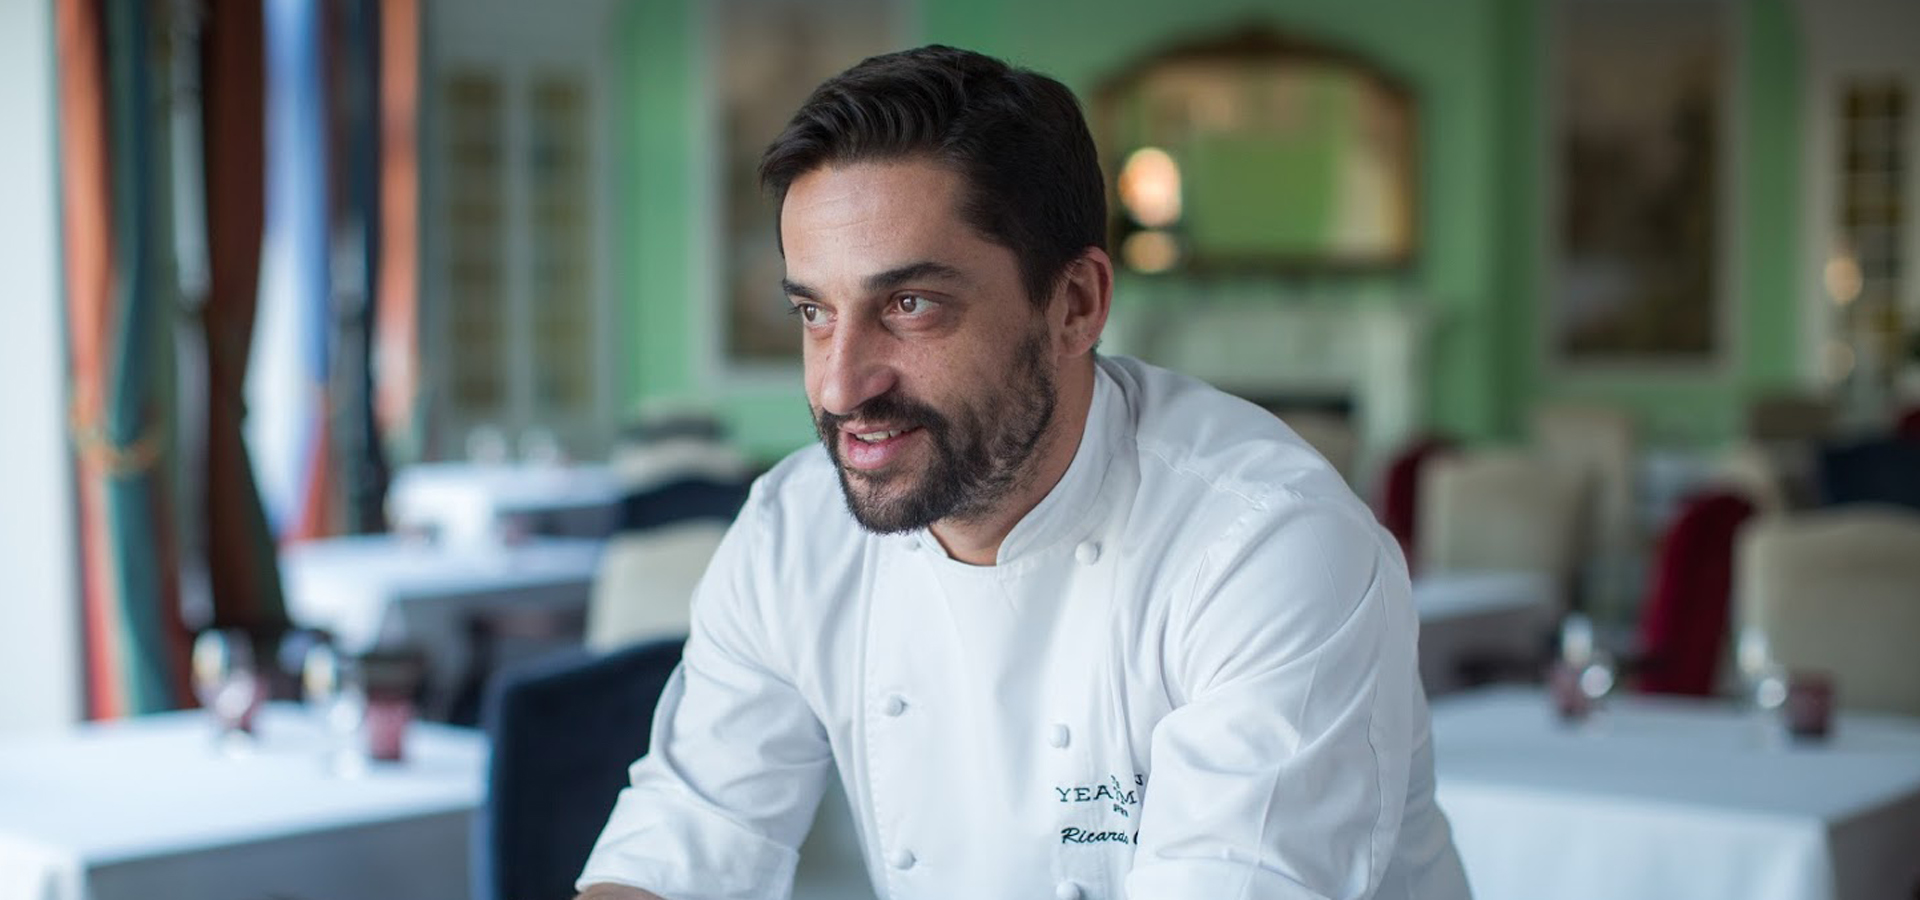 Chef Ricardo Costa at The Yeatman, Porto